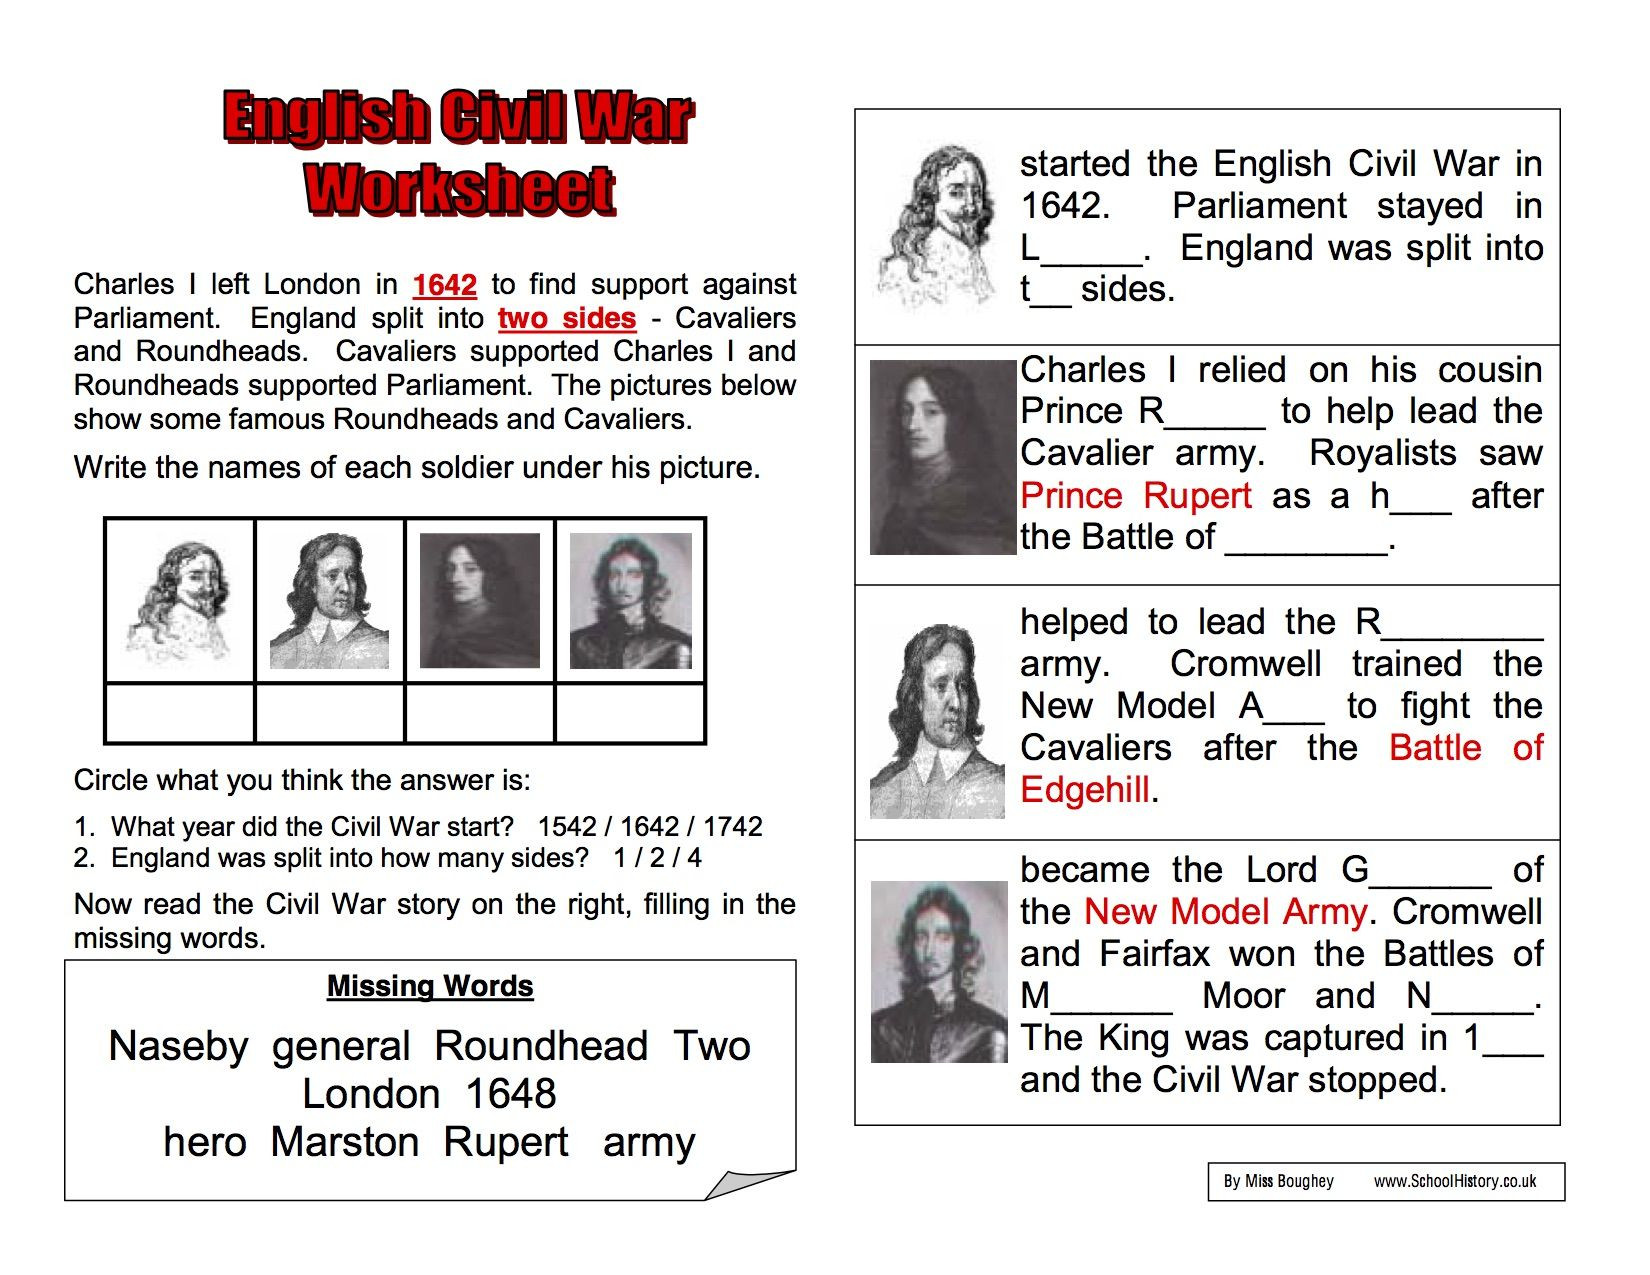 Civil War Worksheets 5th Grade English Civil War Background Worksheet